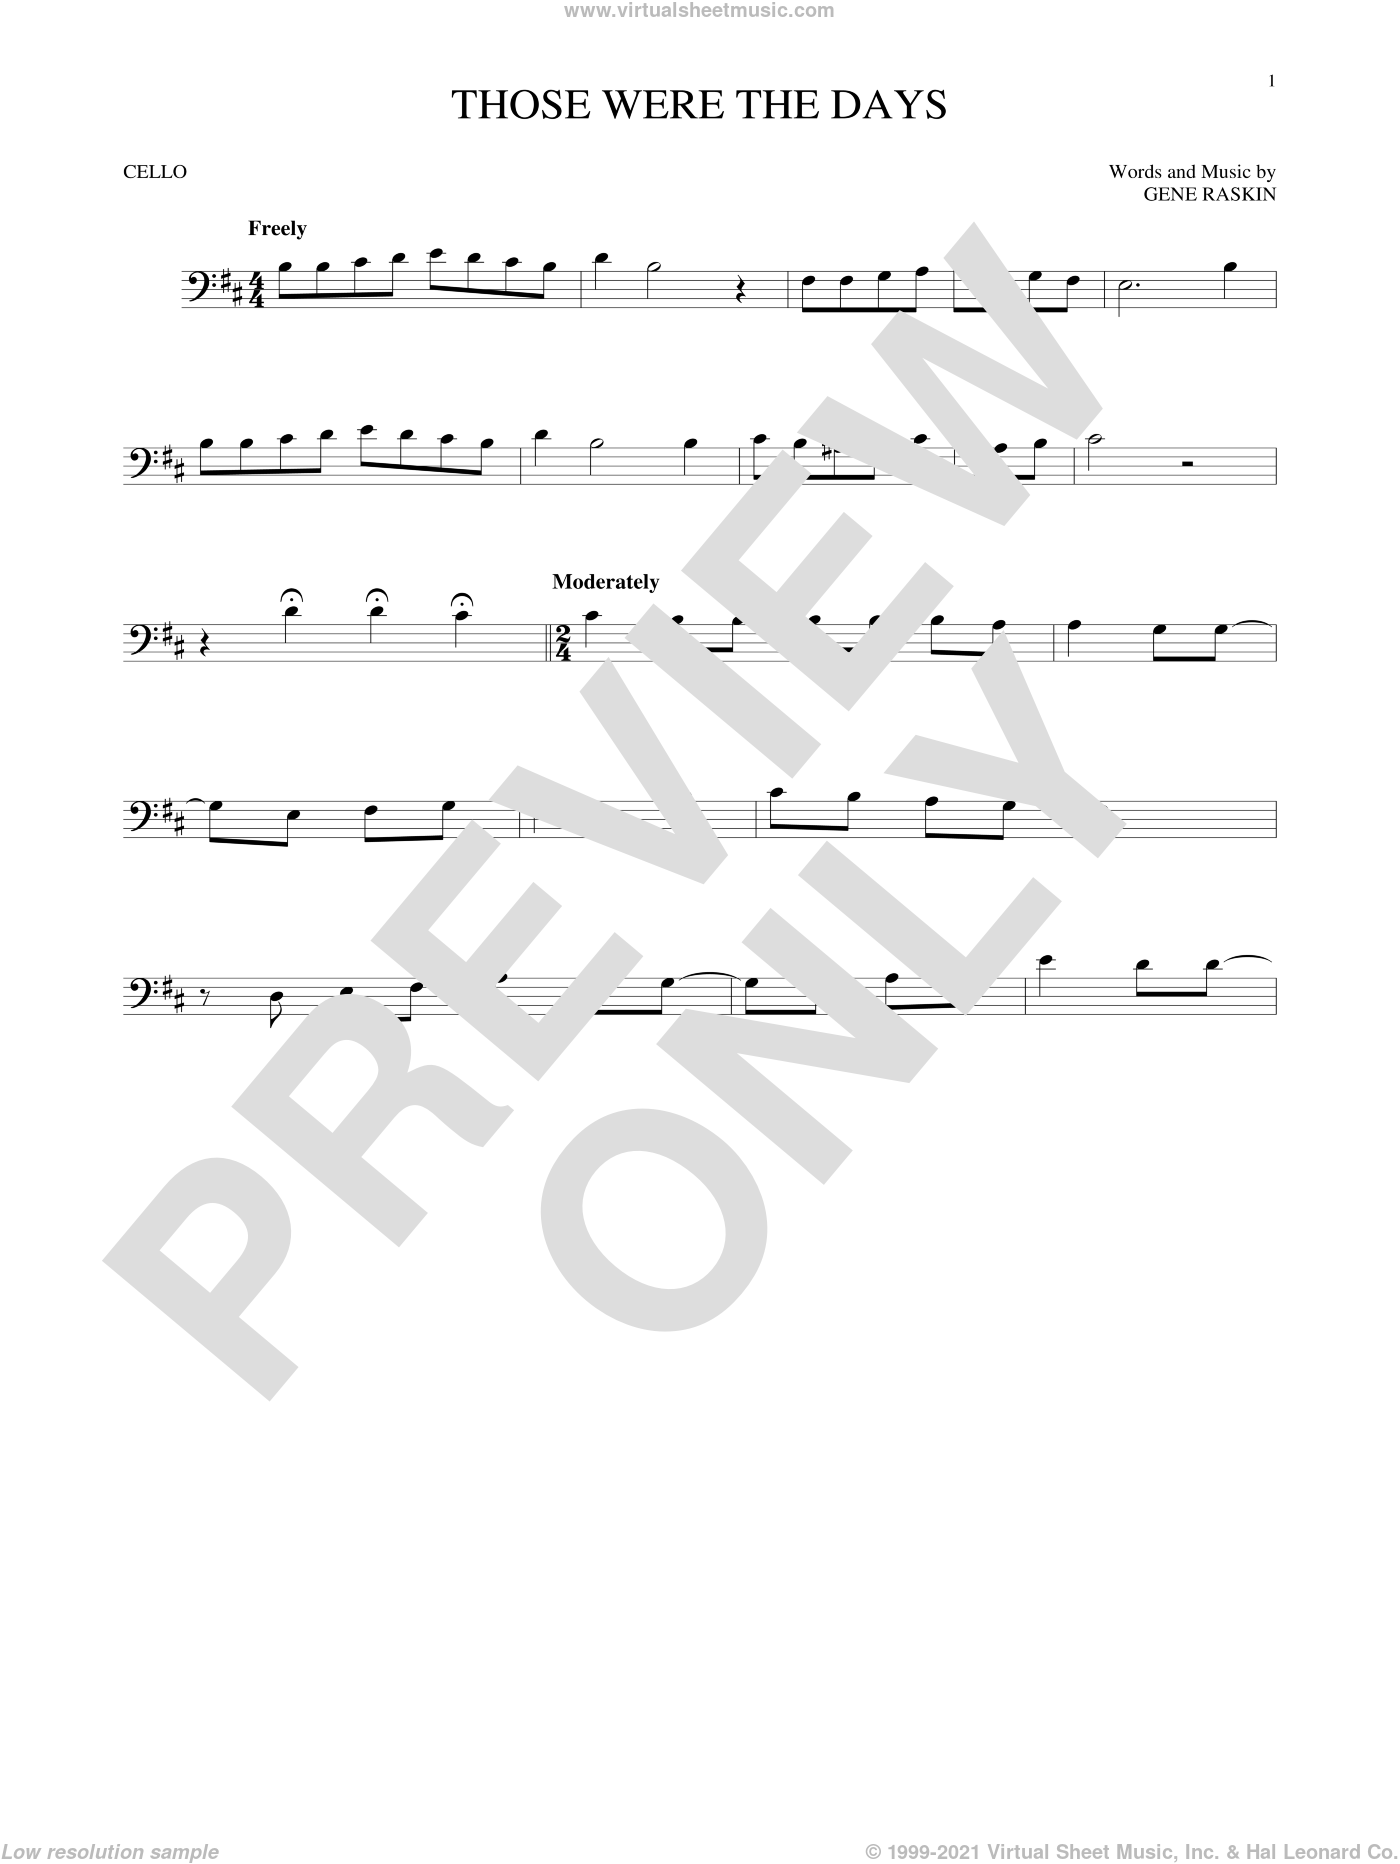 Those Were The Days sheet music for cello solo by Mary Hopkins and Gene Raskin, intermediate skill level